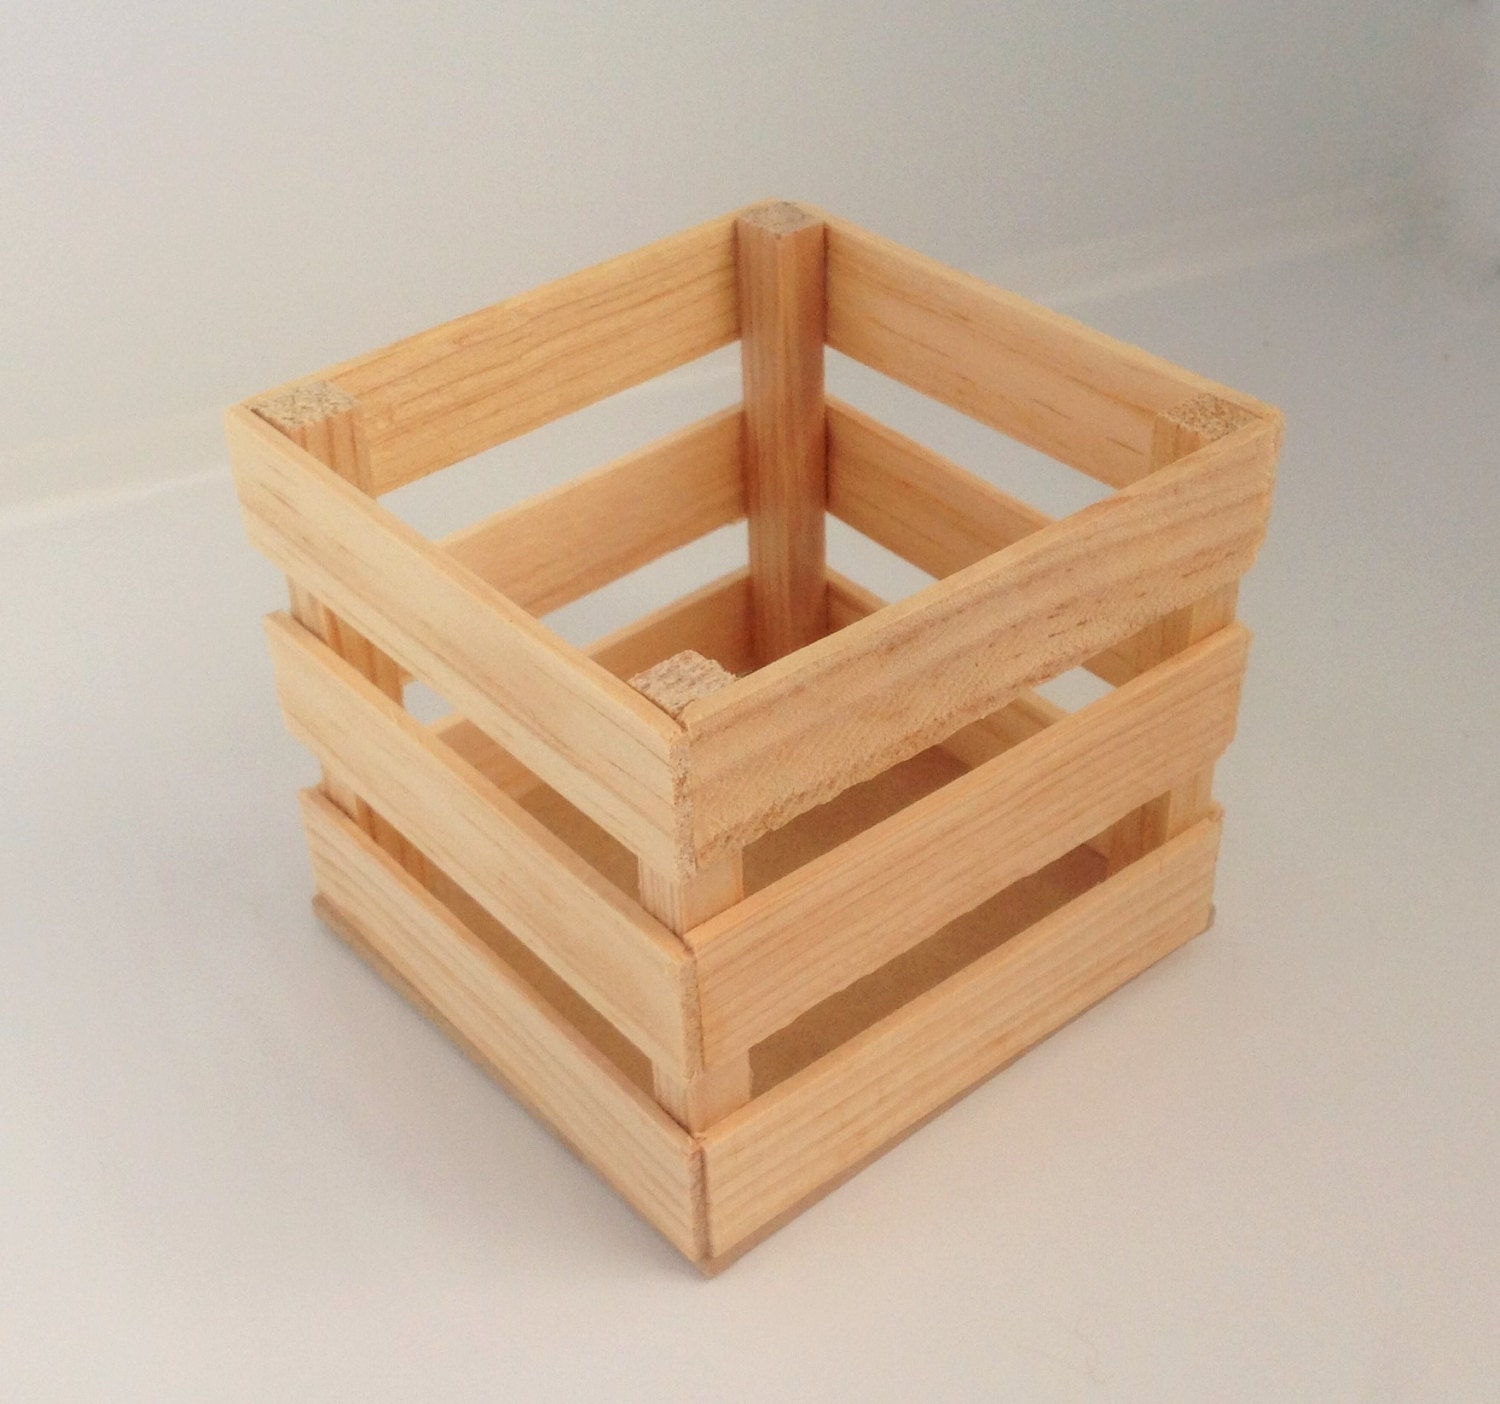 Pcs mini wood crate party supplies wooden small centerpieces